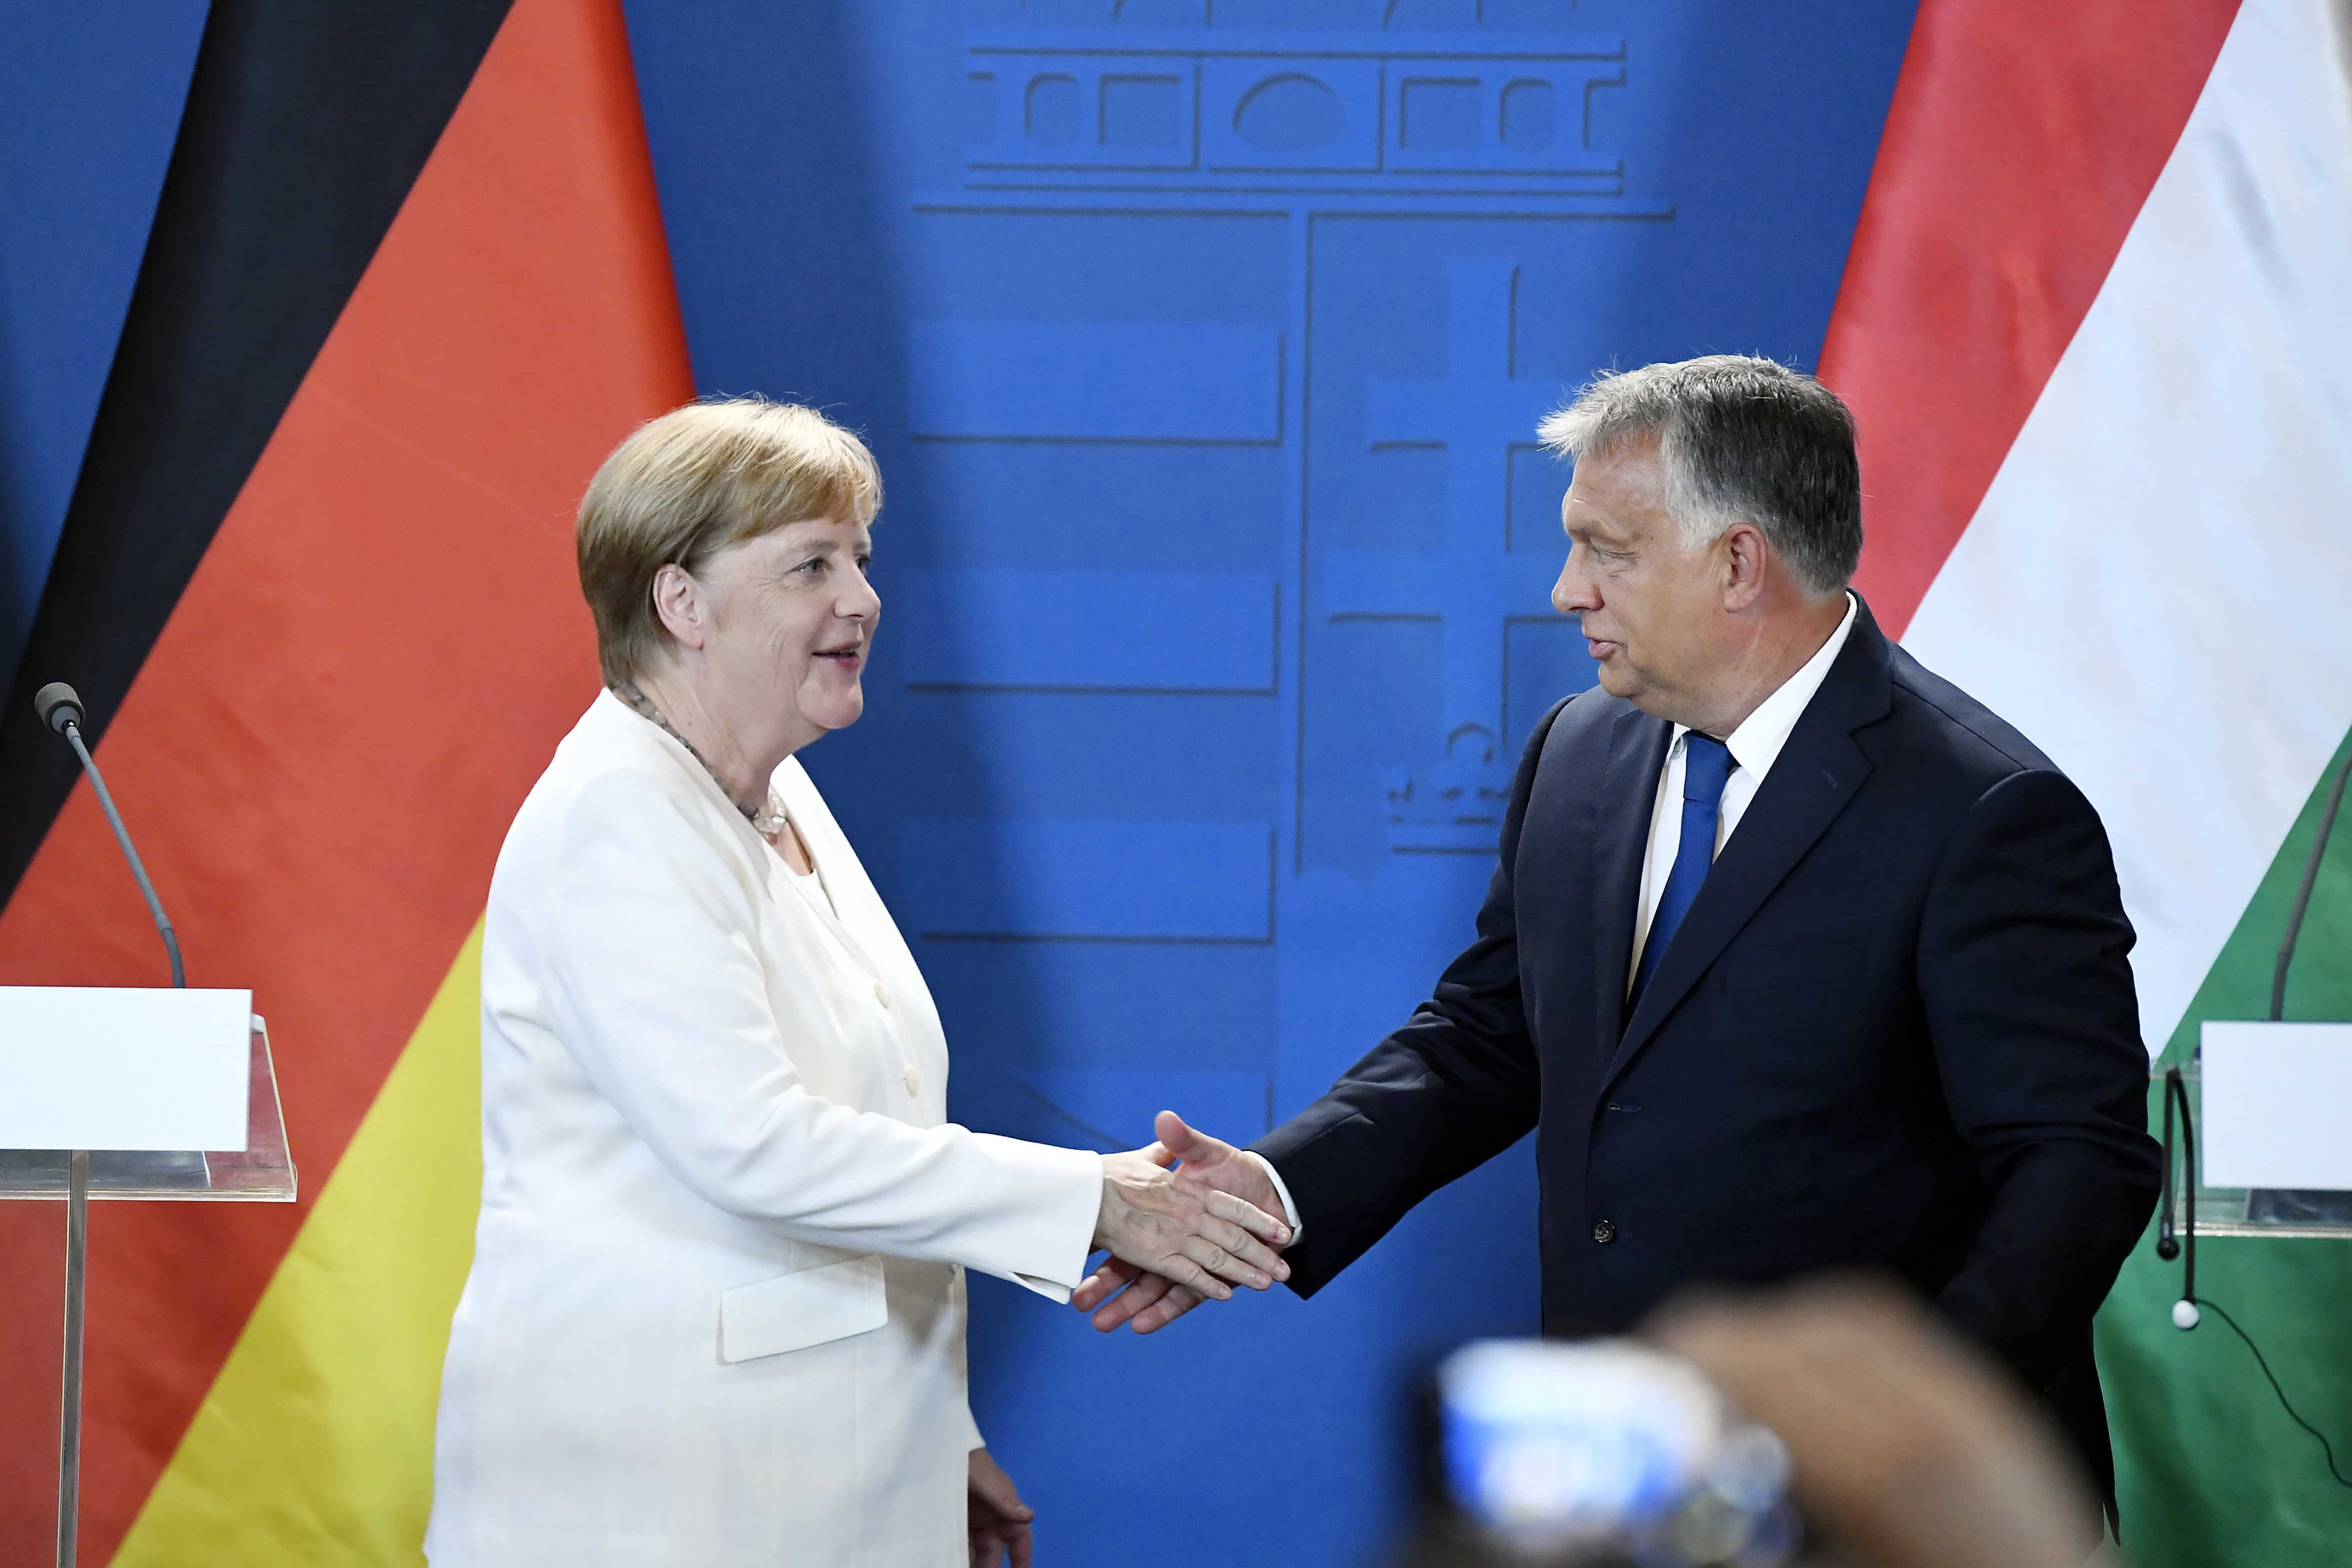 German interior minister thanks Hungary for its role in 1989